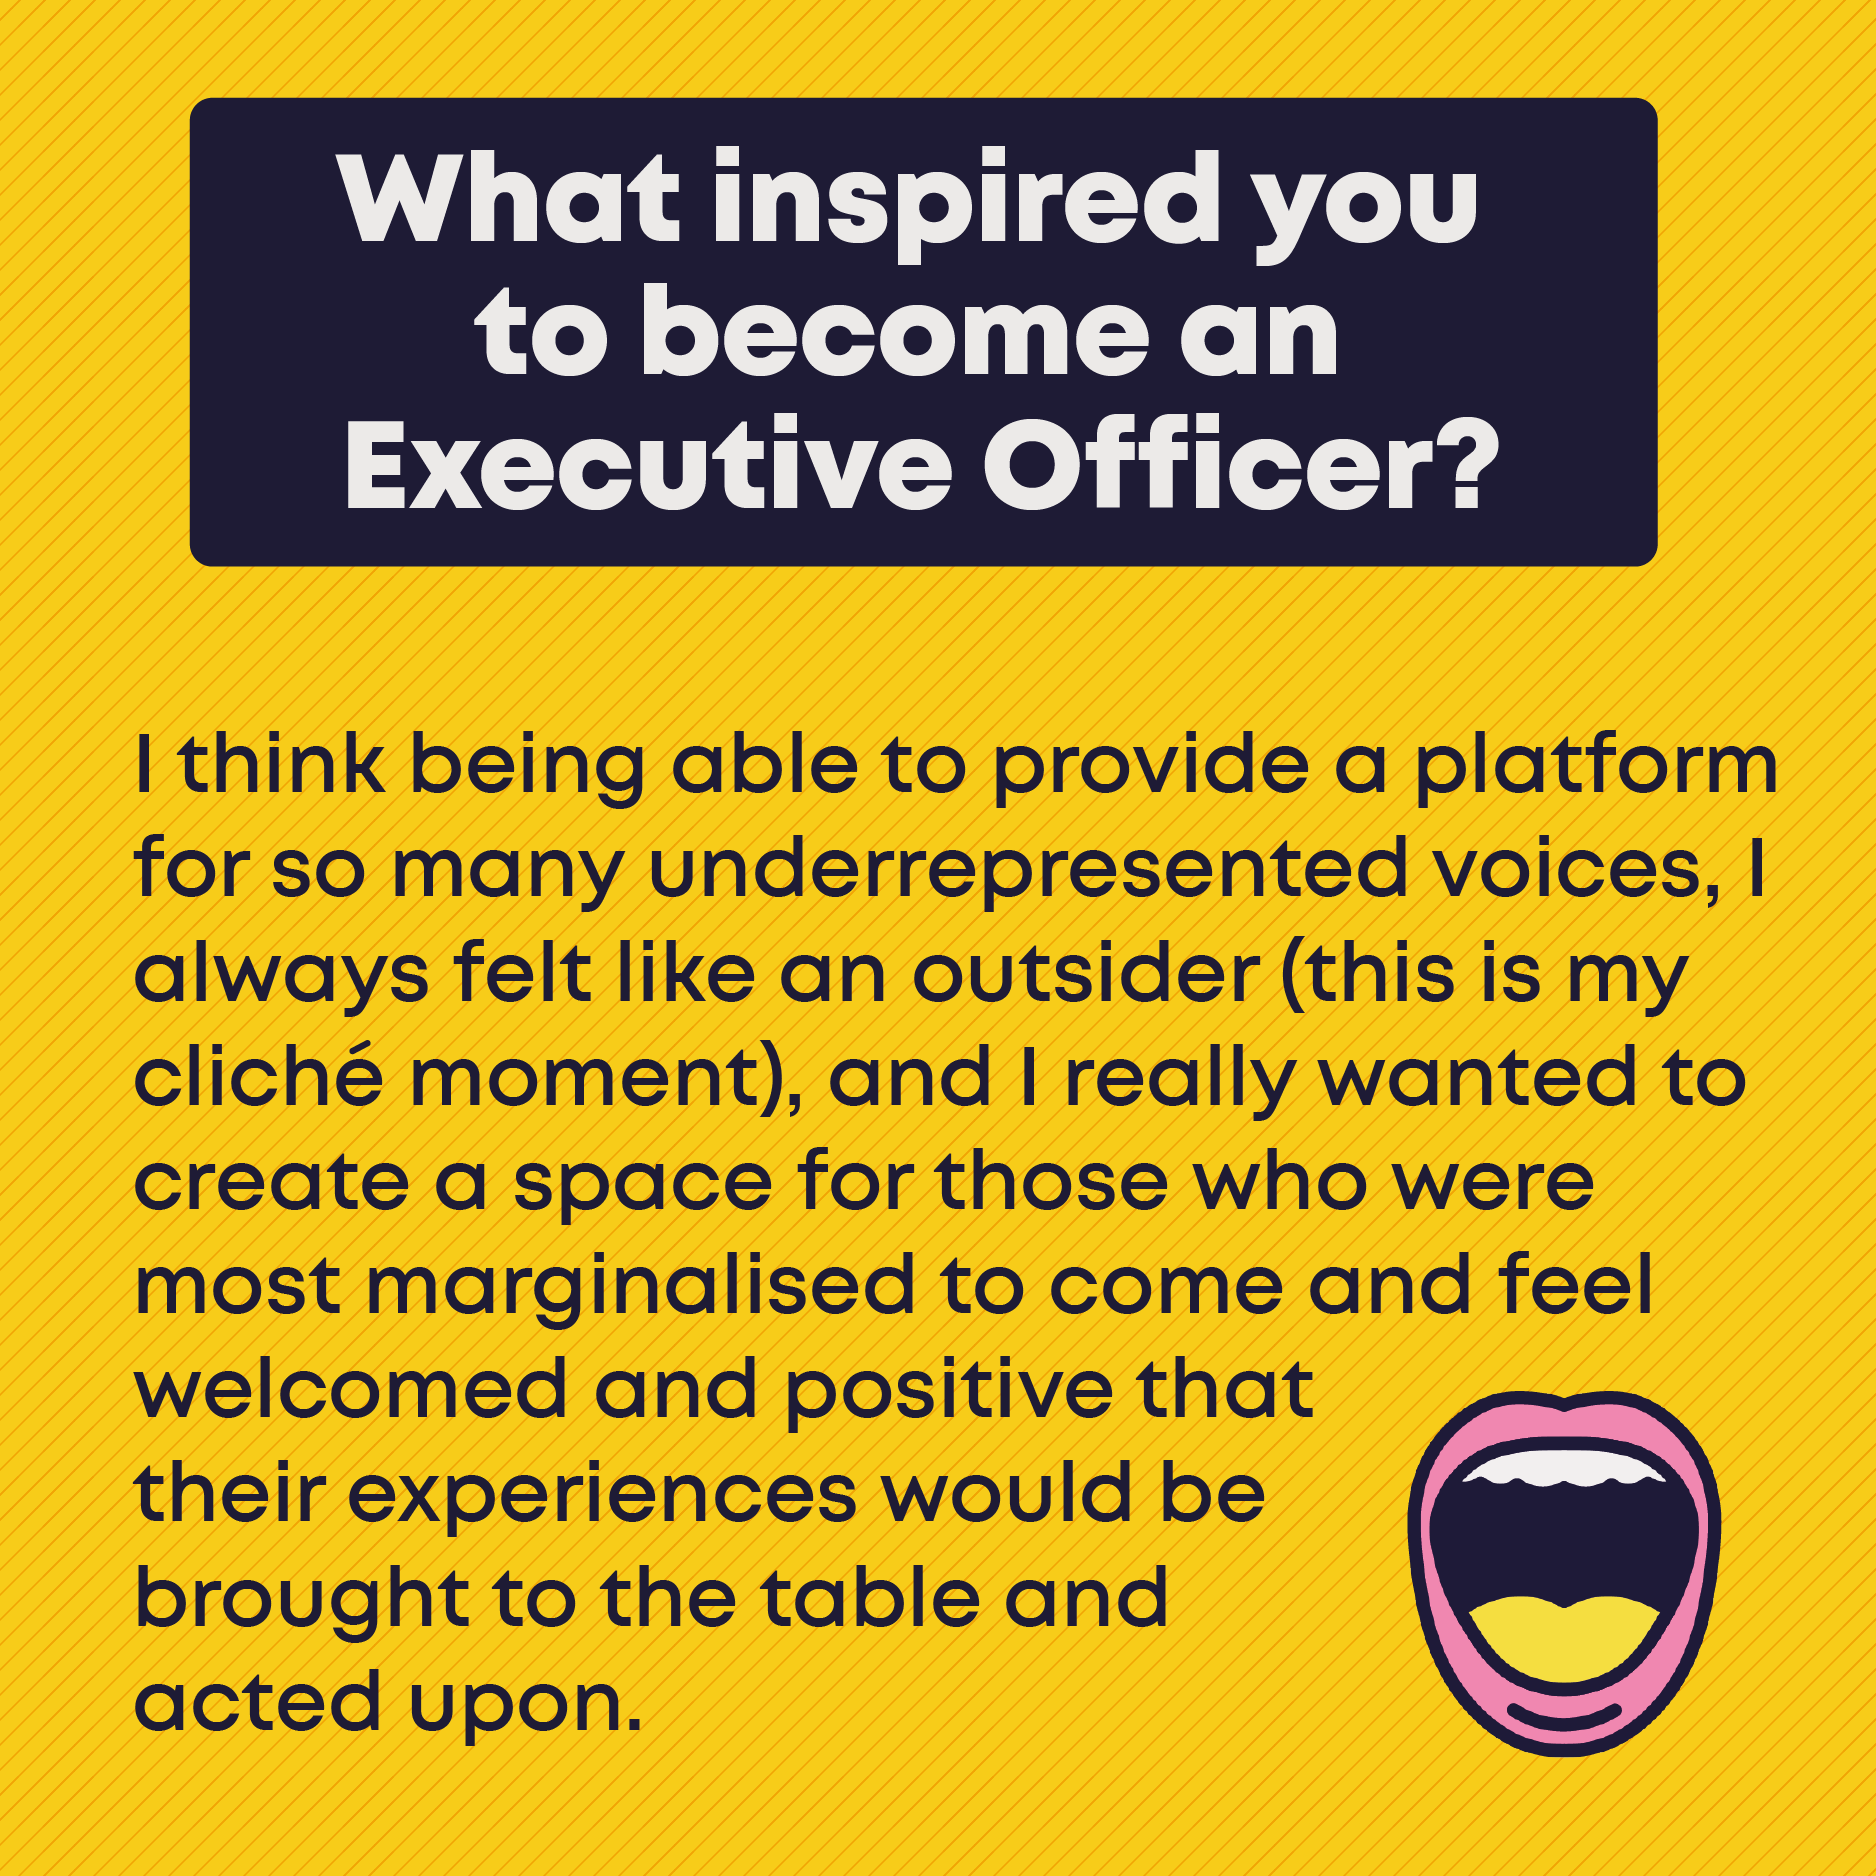 What inspired you to become an Executive Officer? I think being able to provide a platform for so many underrepresented voices, I always felt like an outsider (this is my cliche moment), and I really wanted to create a space for those who were most marginalised to come and feel welcomed and positive that their experiences would be brought to the table and acted upon.